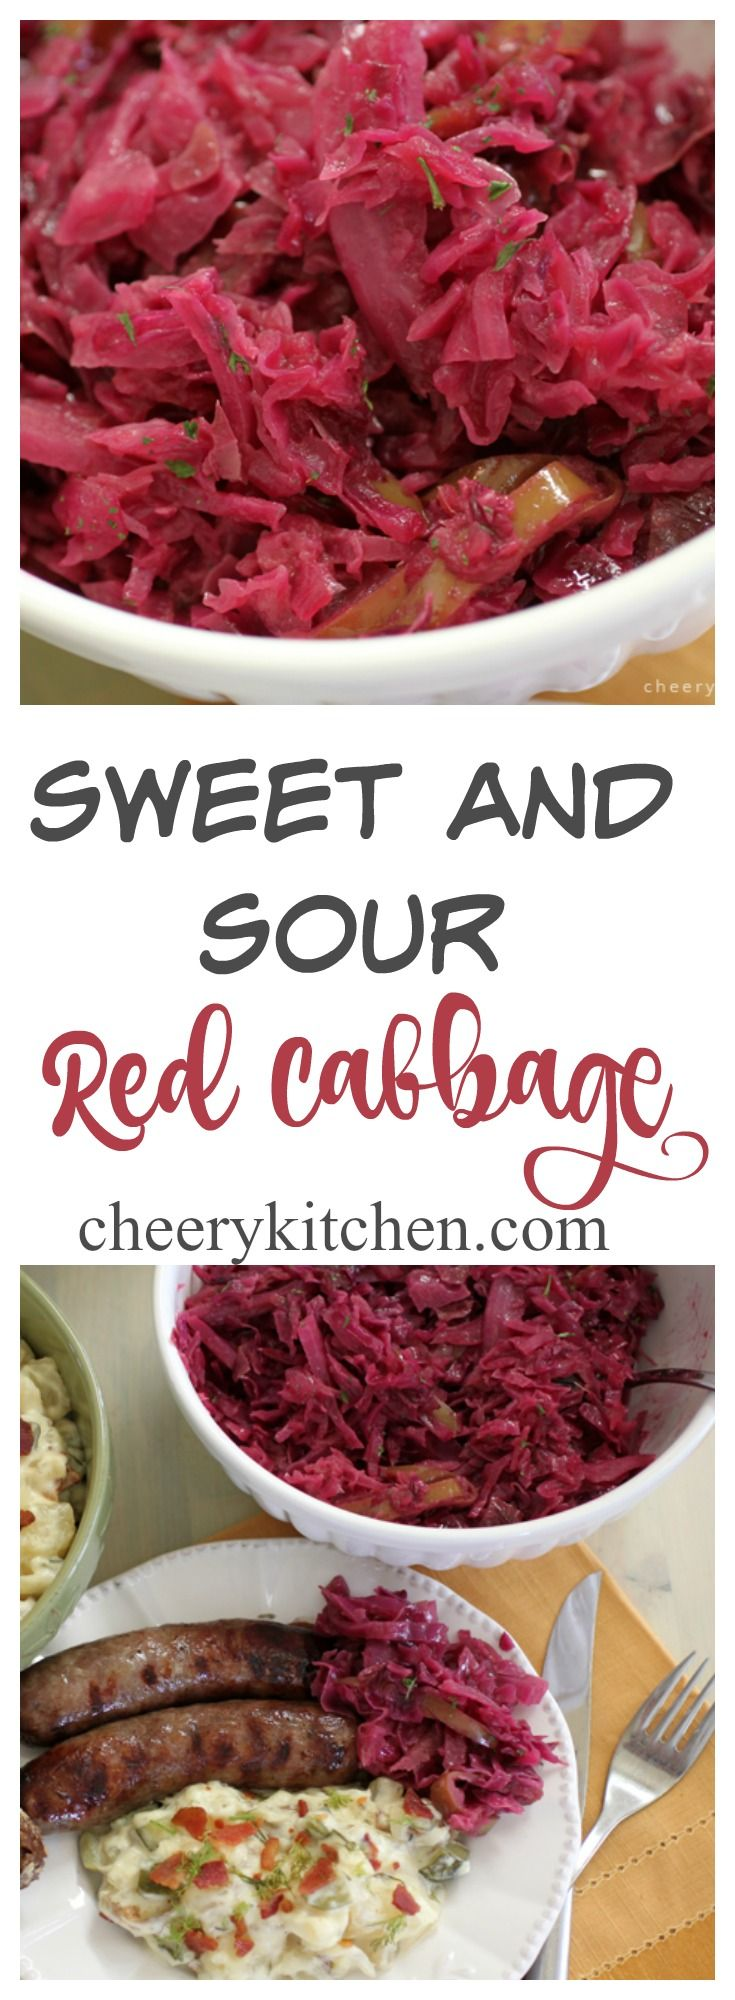 Bring a taste of Oktoberfest to your dinner table tonight with my Sweet and Sour Red Cabbage.  Made with a trio of apples, red wine and my secret ingredient to spice up this beautiful sweet-tart Germanic dish.